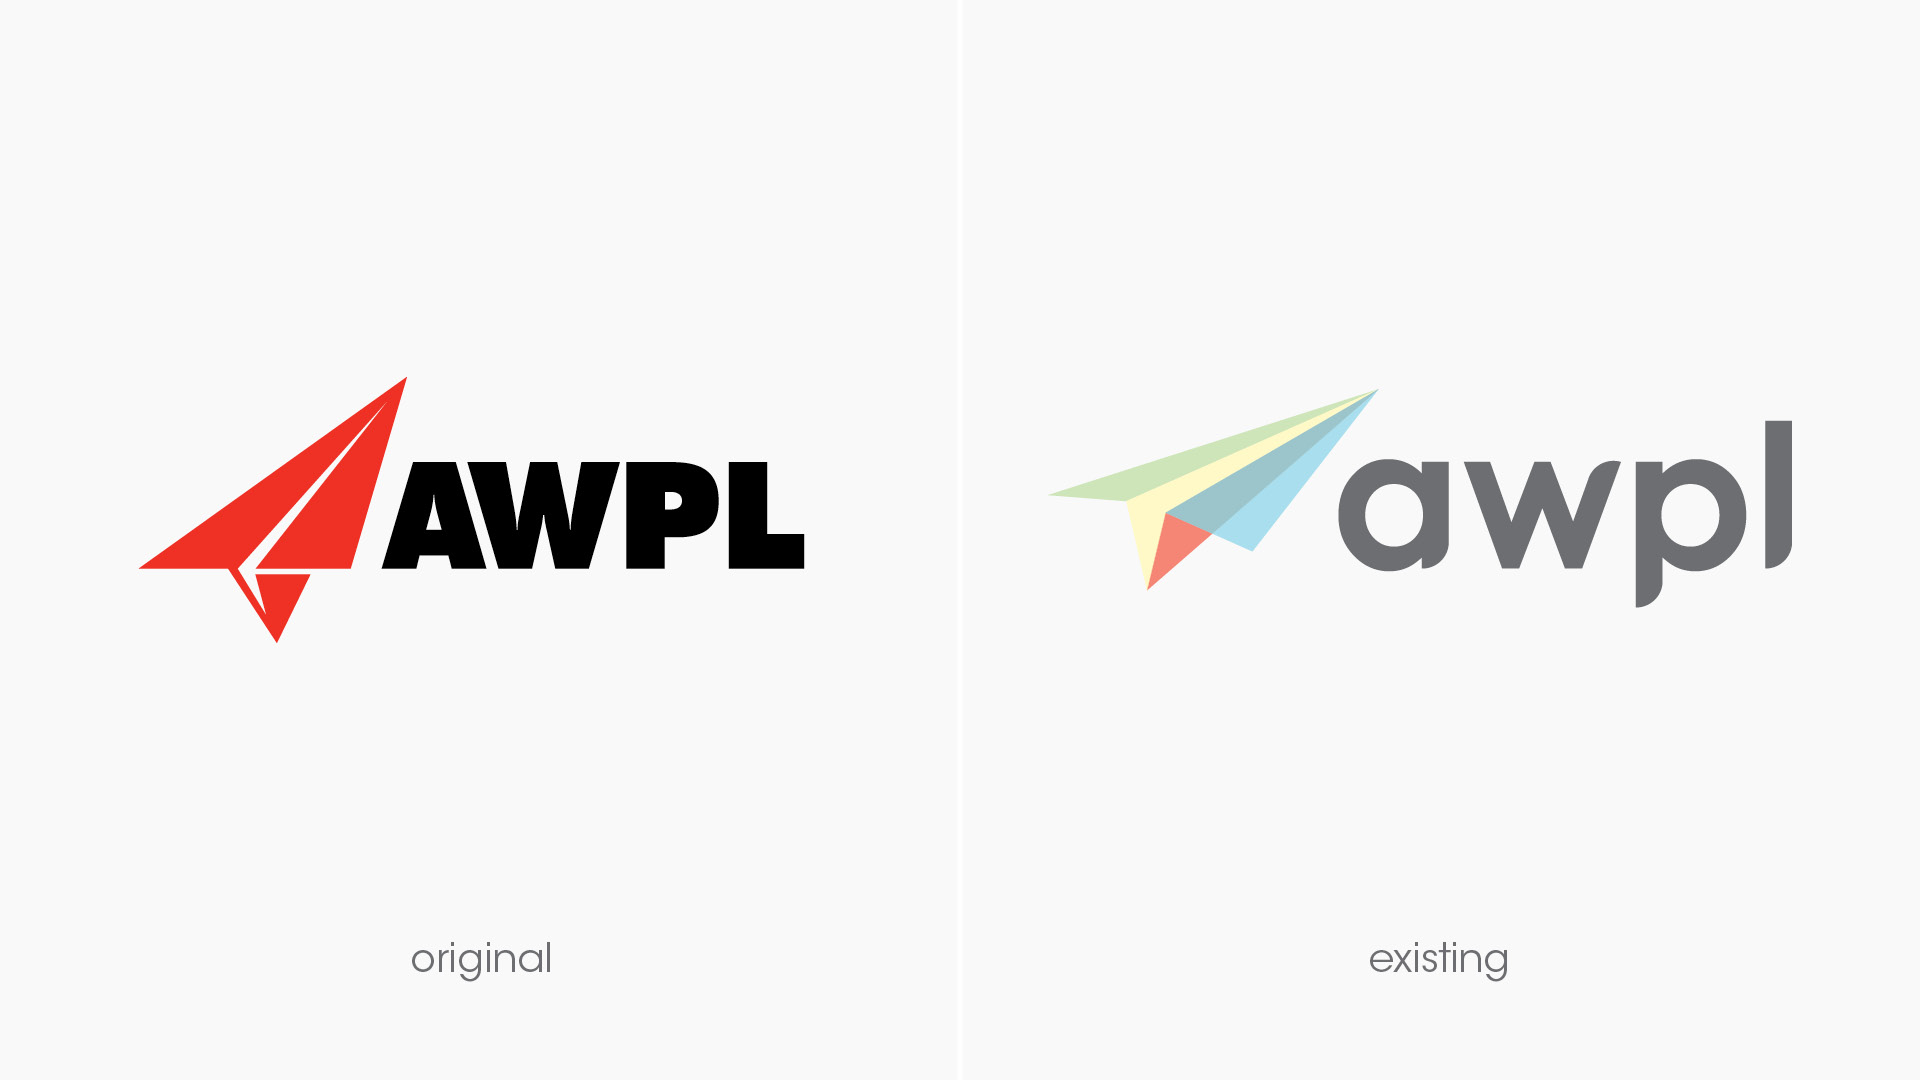 awpl Project Images16v2